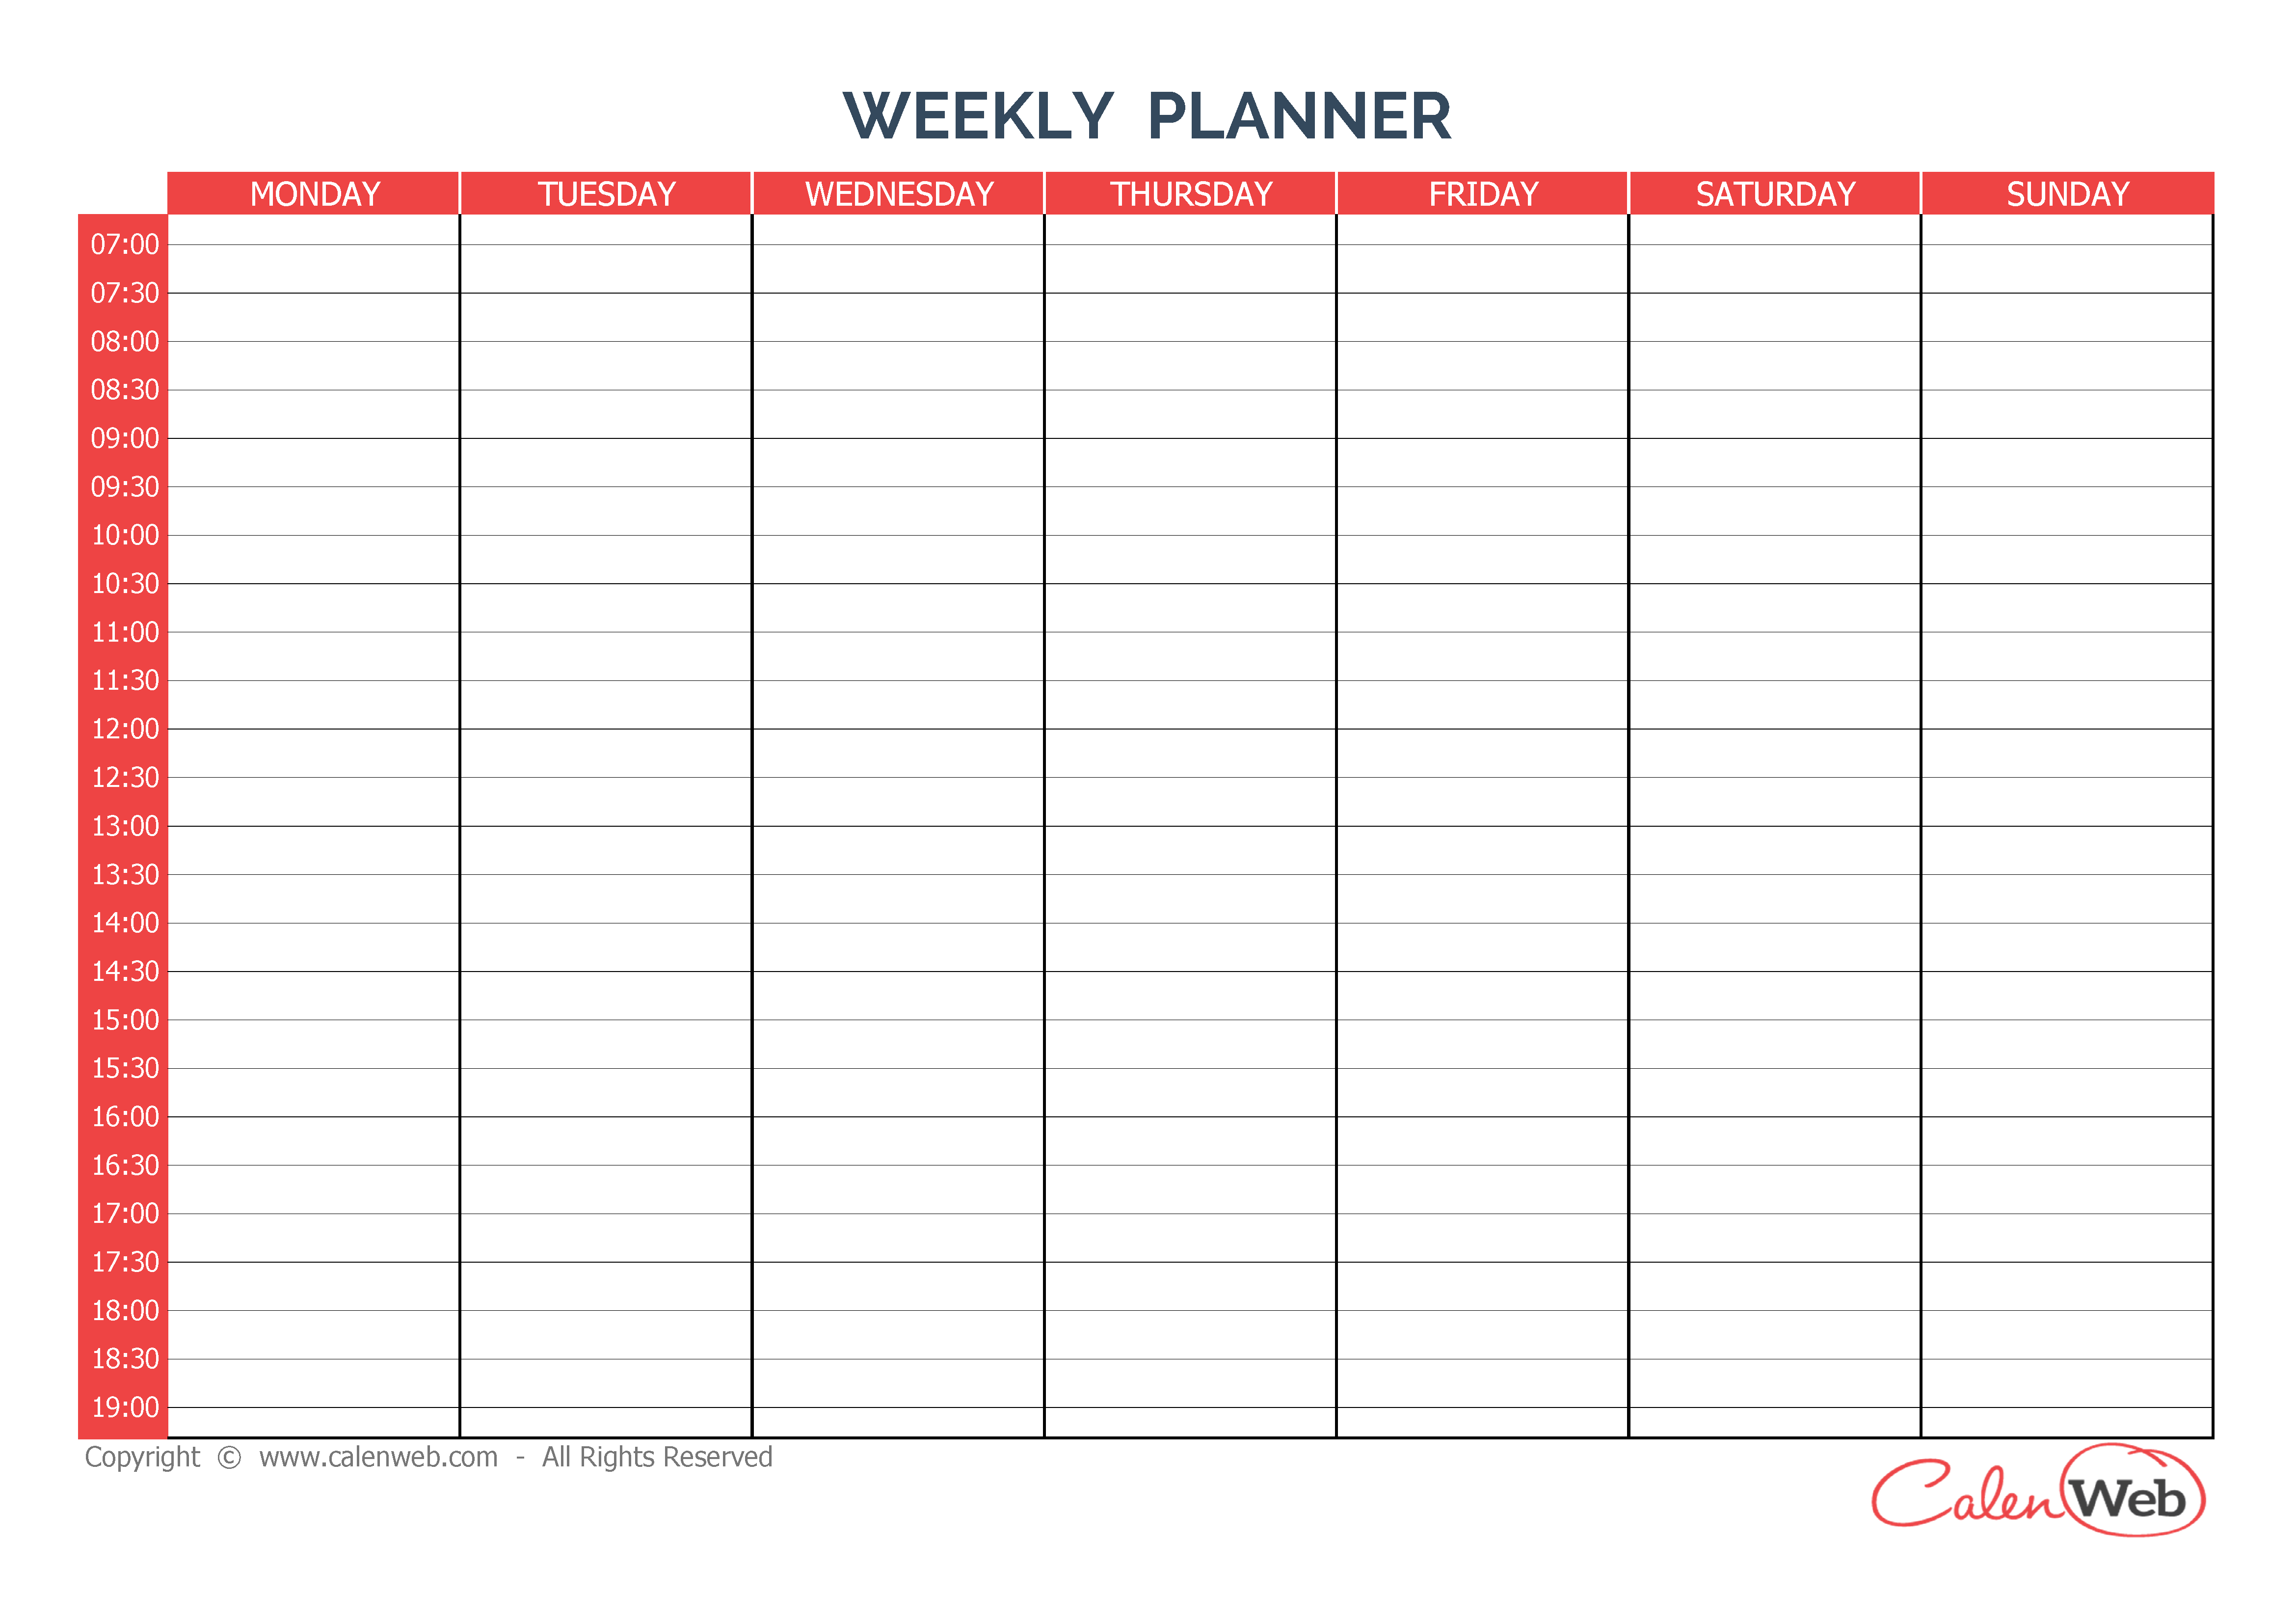 7 Day Planner Template March 2017 Calendar – 7 Day Planner Template